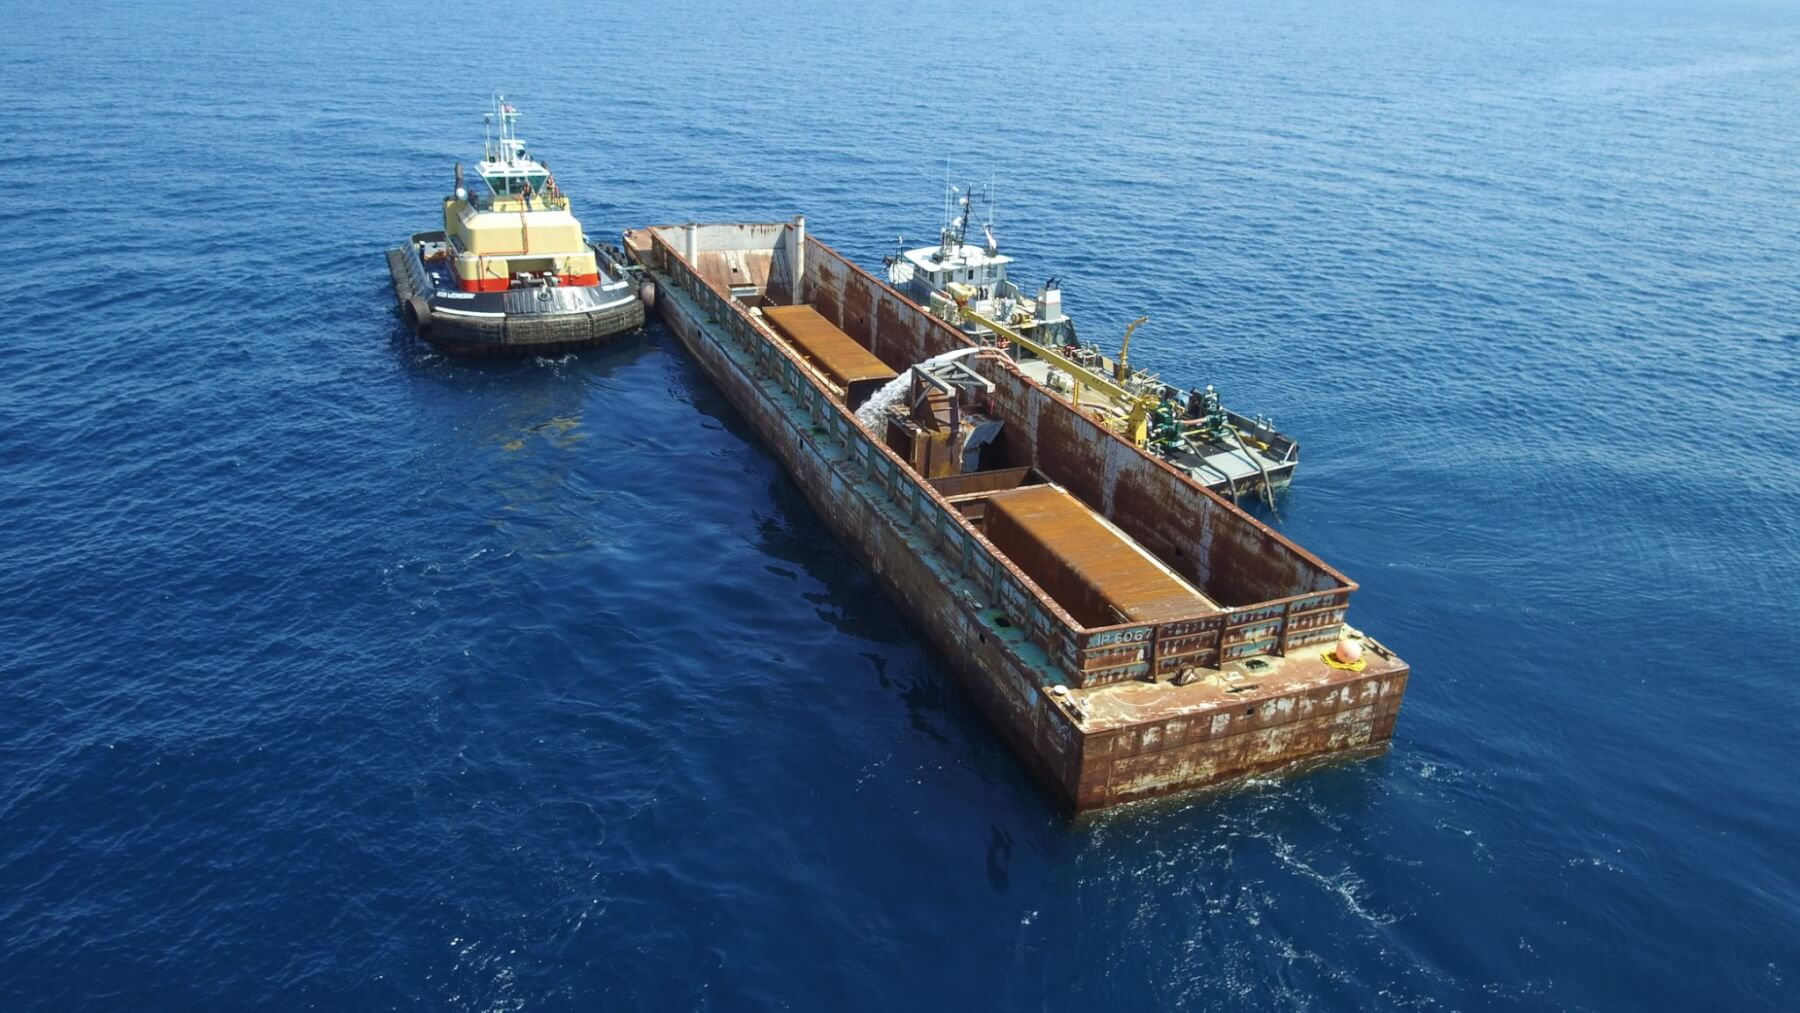 Artificial reef zone expands thanks to unique partnership